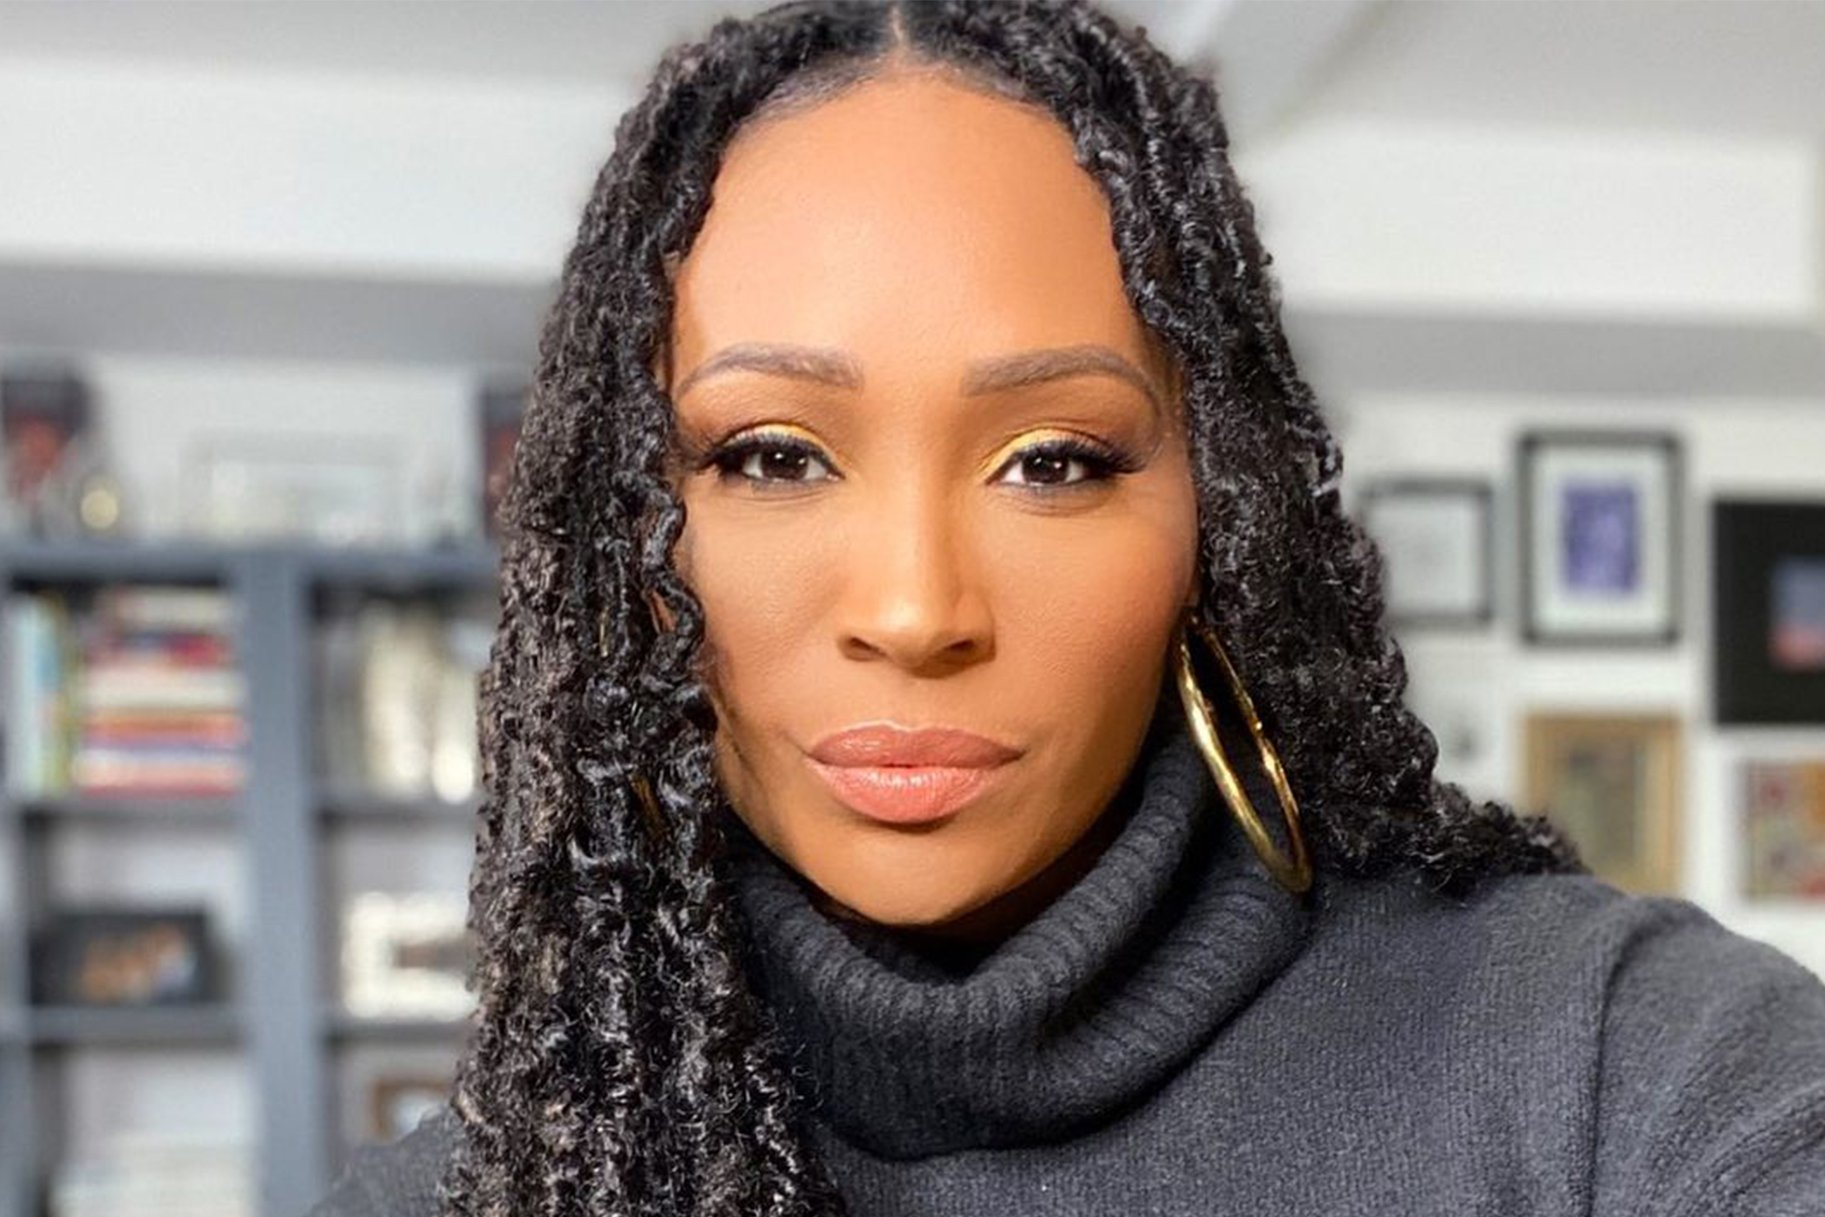 Cynthia Bailey's No-Makeup Photo Has Fans In Awe – See Her Flawless Face